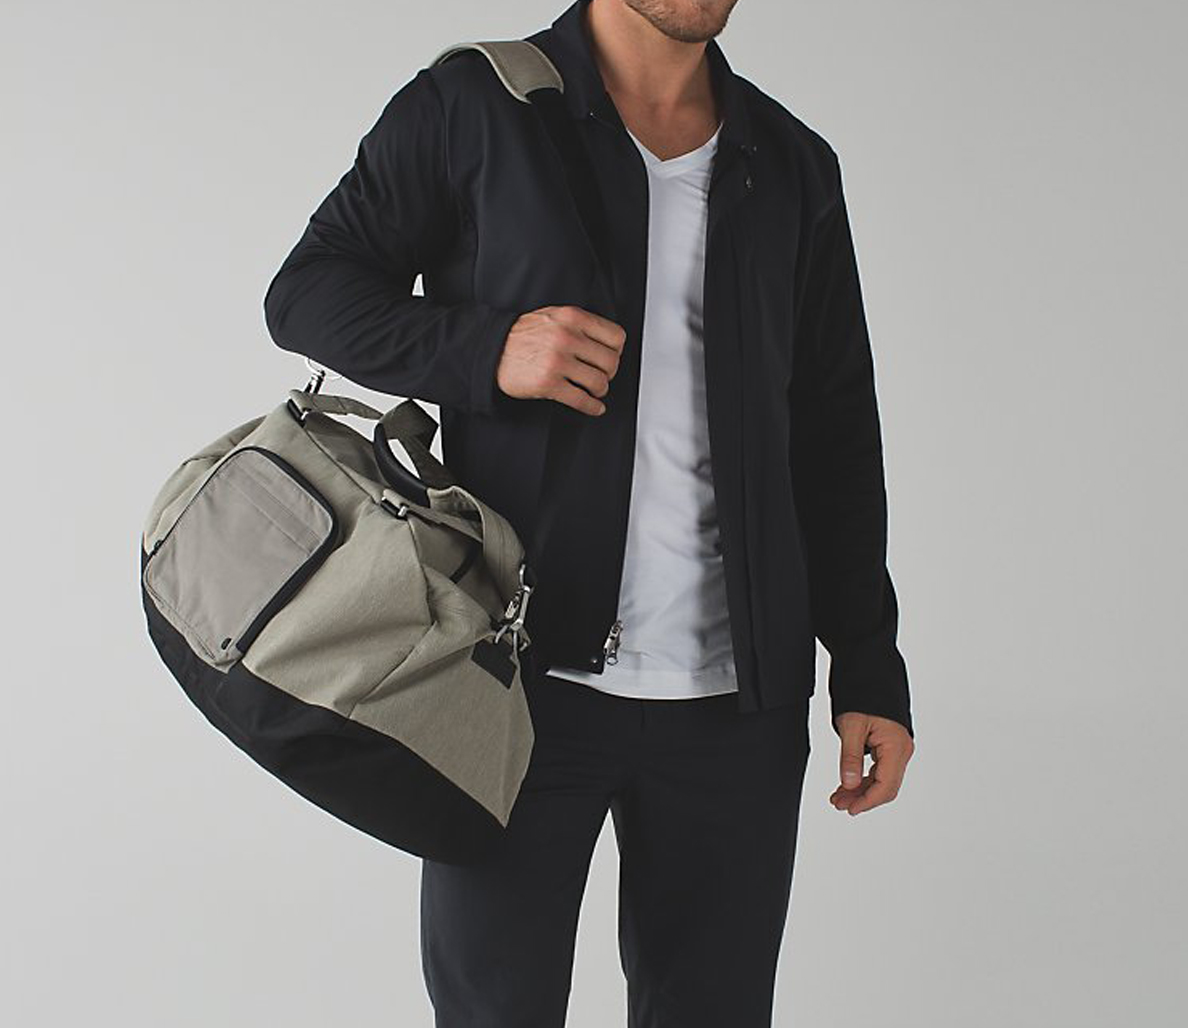 1 / 13 & The Best Bags for Men to Transition From Work to the Gym